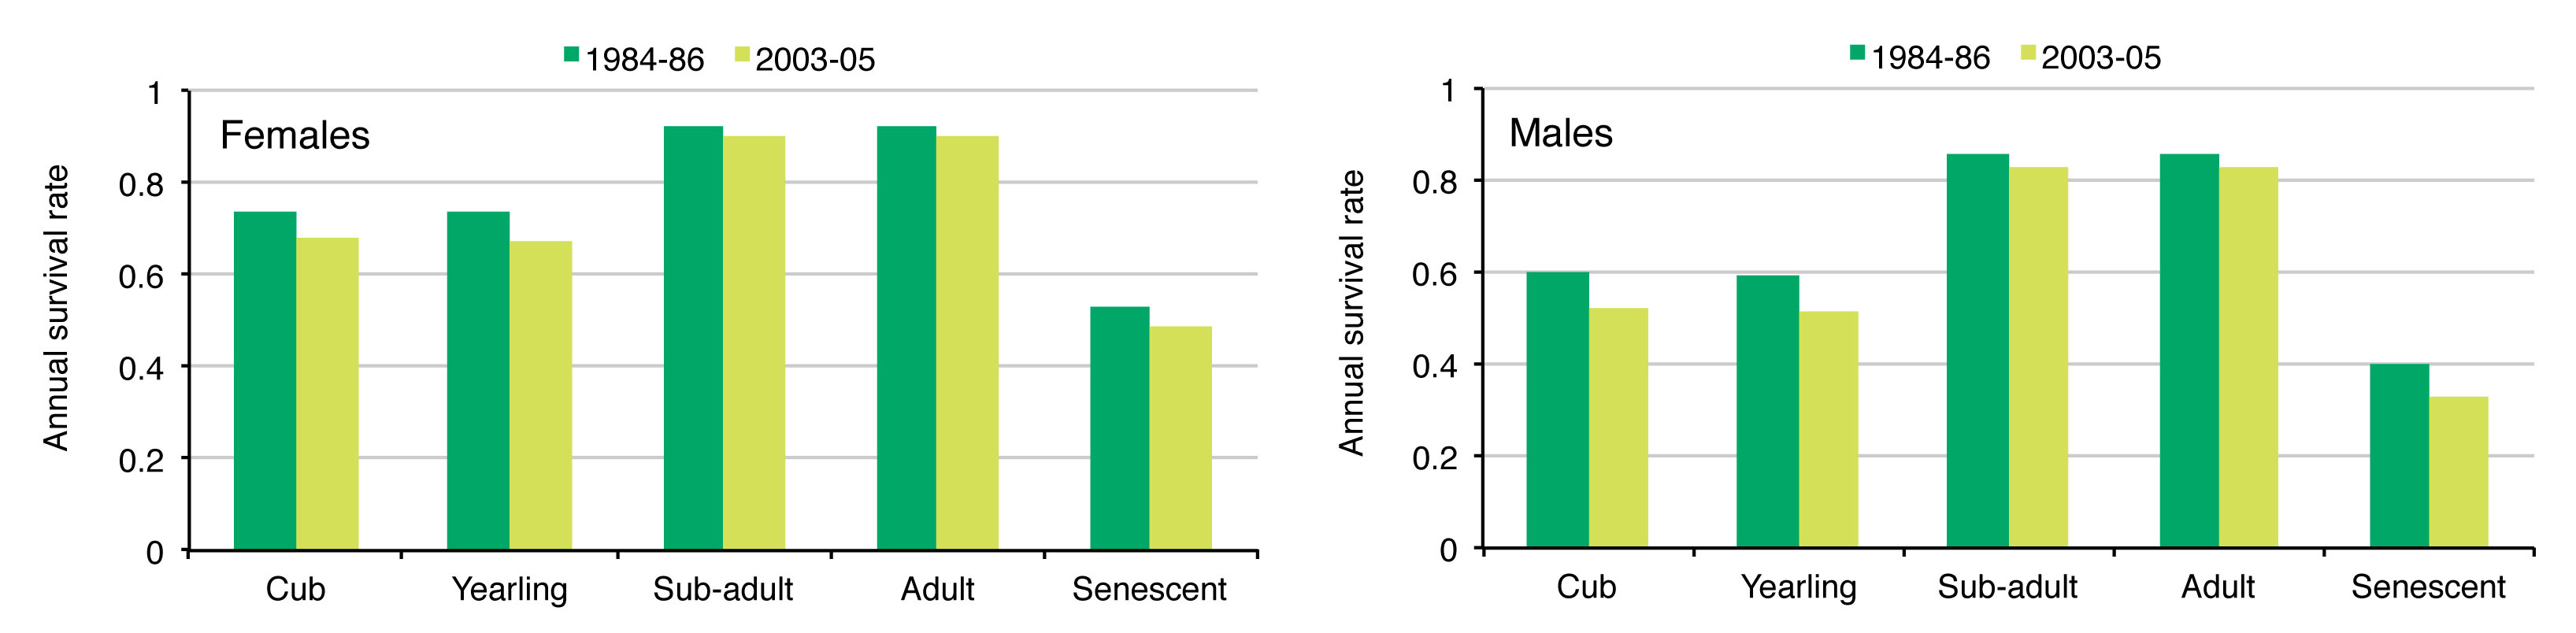 Figure 3. Comparison of annual survival rates of Polar Bears in the southern Hudson Bay subpopulation between 1984-86 and 2003-05 (adapted from Obbard et al. 2007).